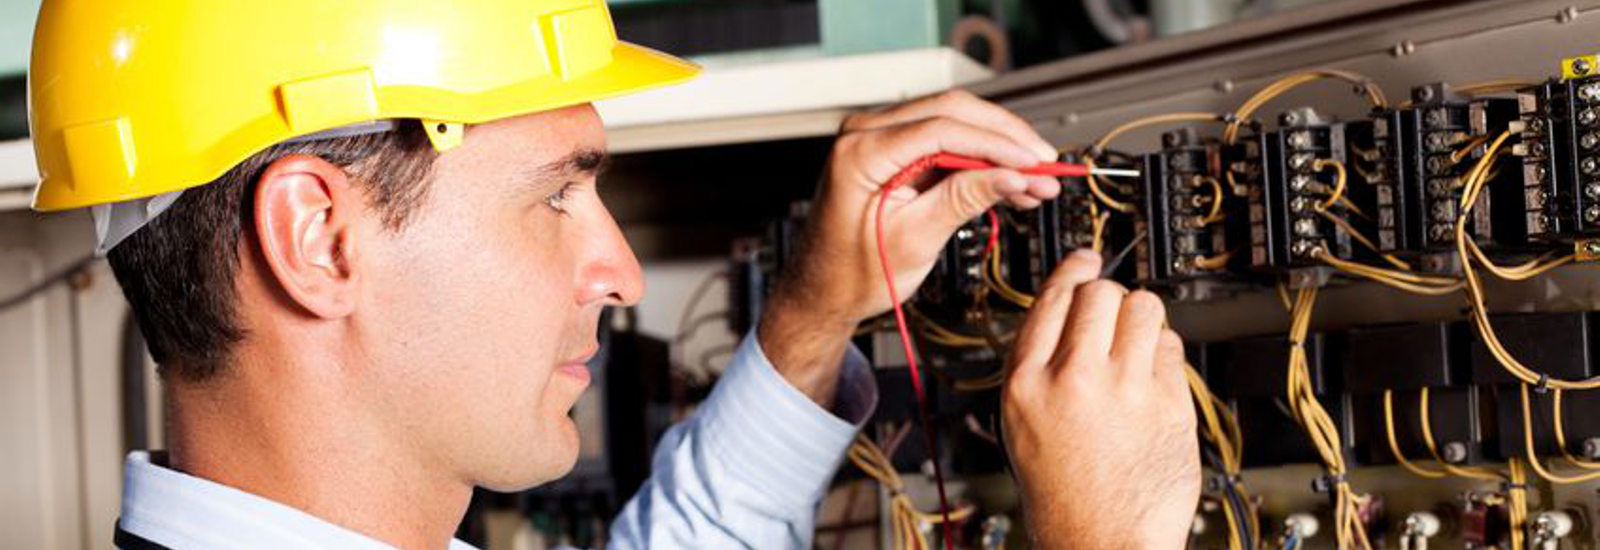 Apply for Electrical Careers Job Opportunities Electrician ...